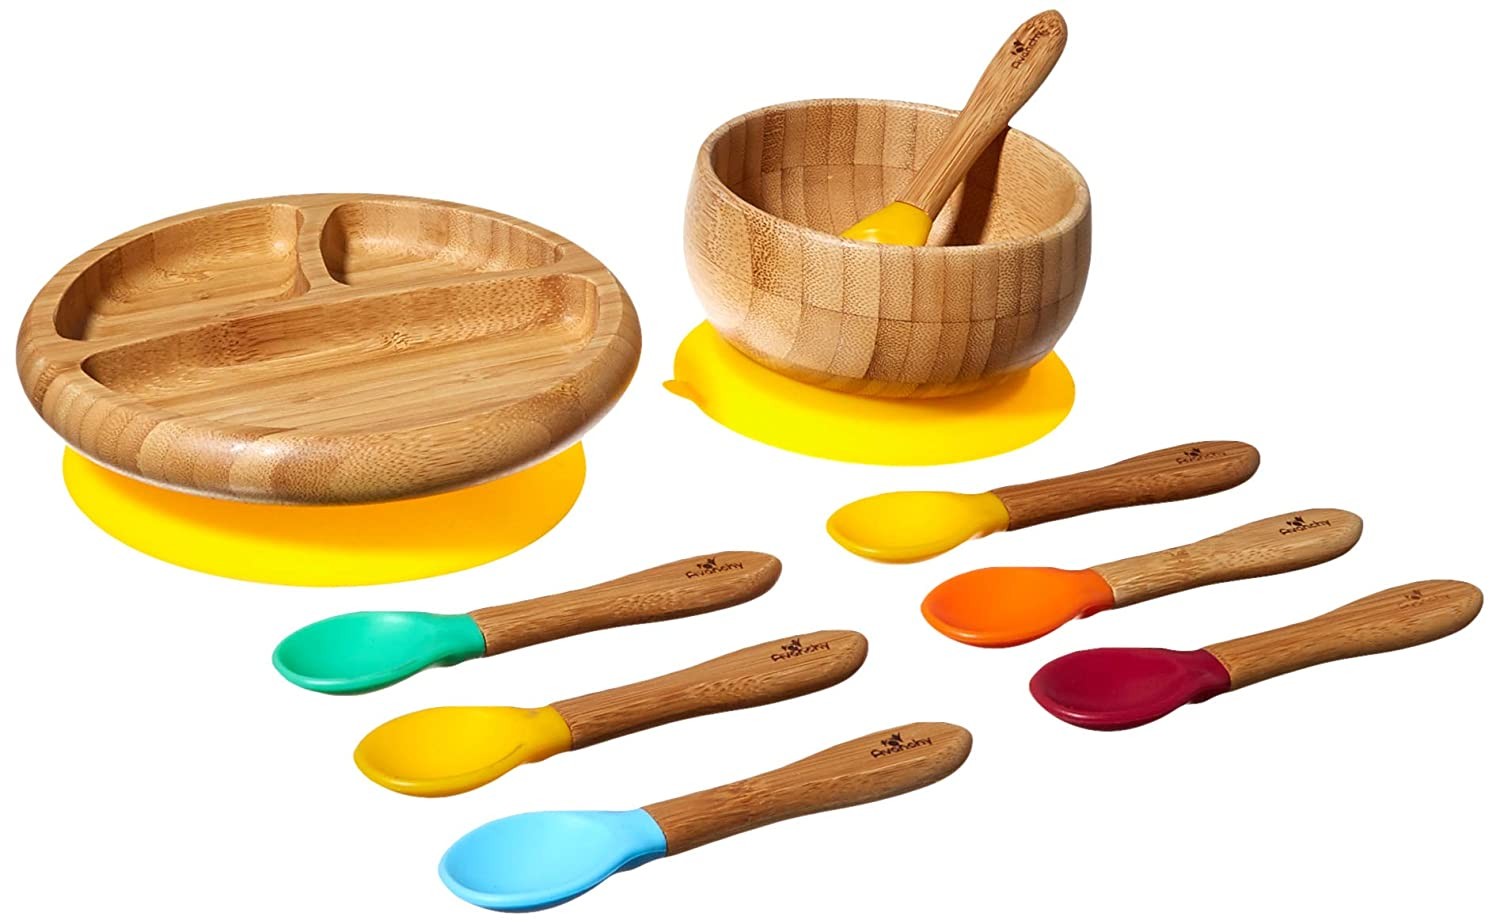 Avanchy Baby Feeding Bamboo Spill Proof Stay Put Suction Bowl + Baby Spoon - Great Baby Gift Set, Green 12493922